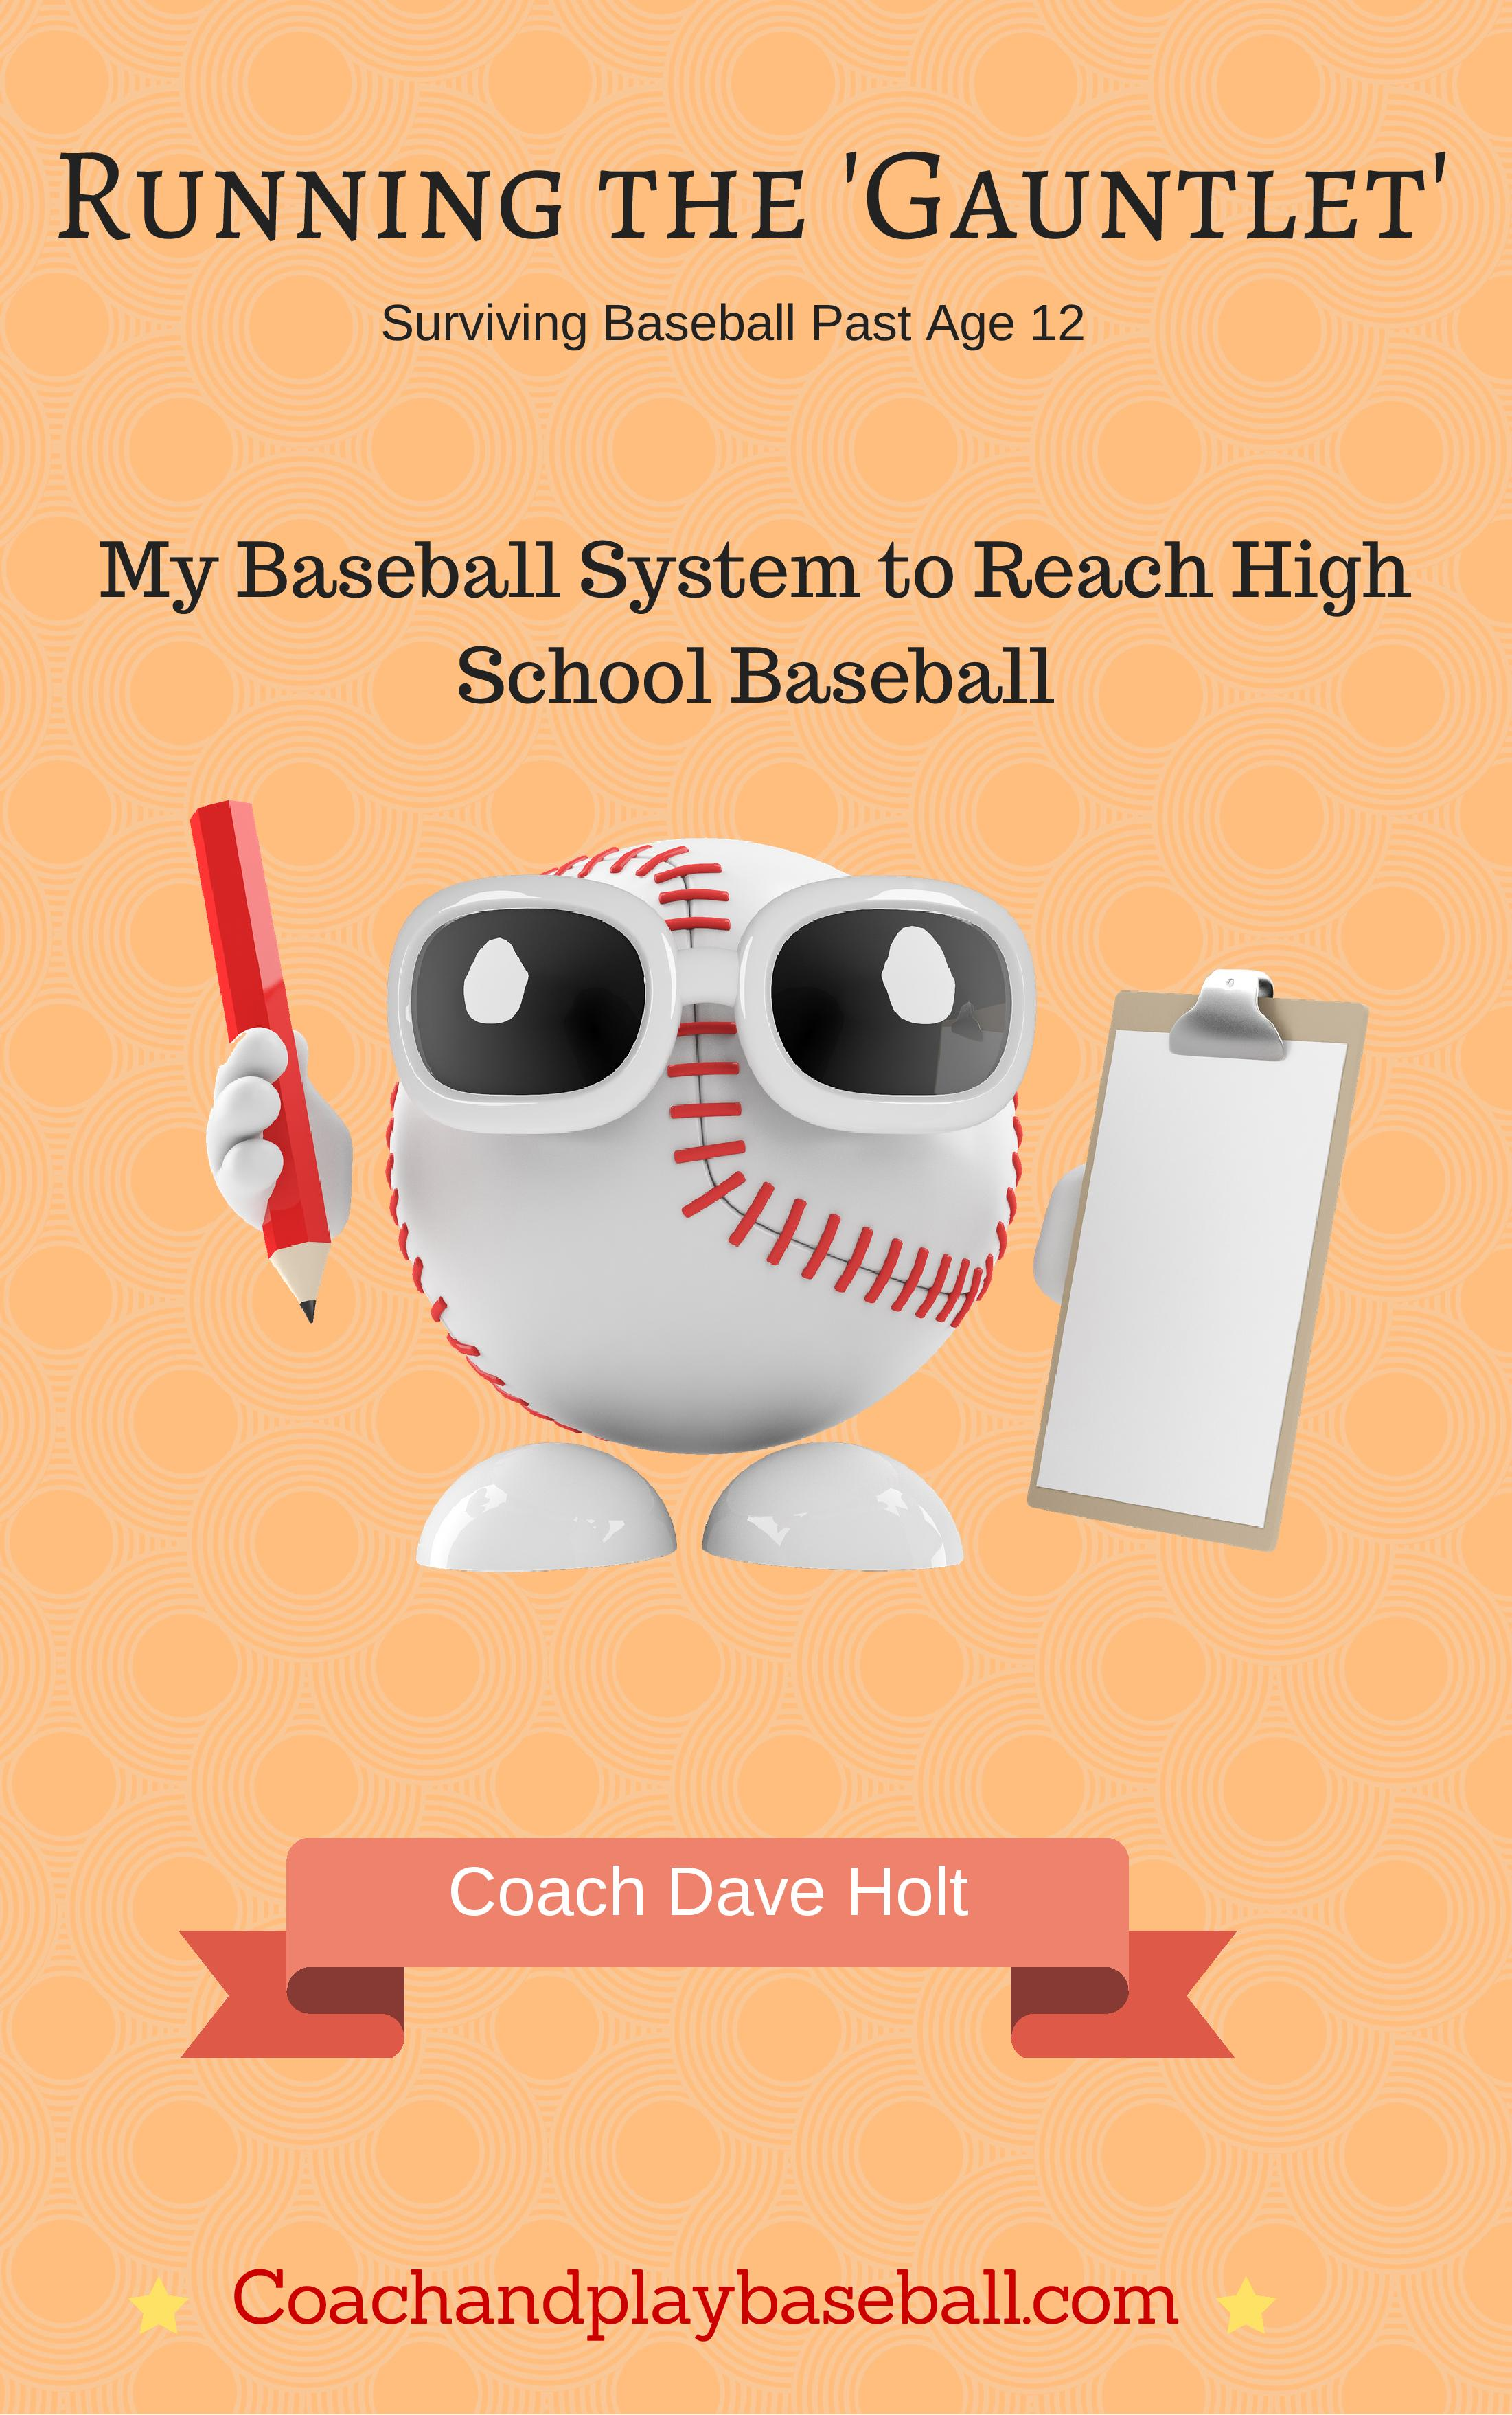 #1. 'Running the Gauntlet' Surviving Baseball Past Age 12